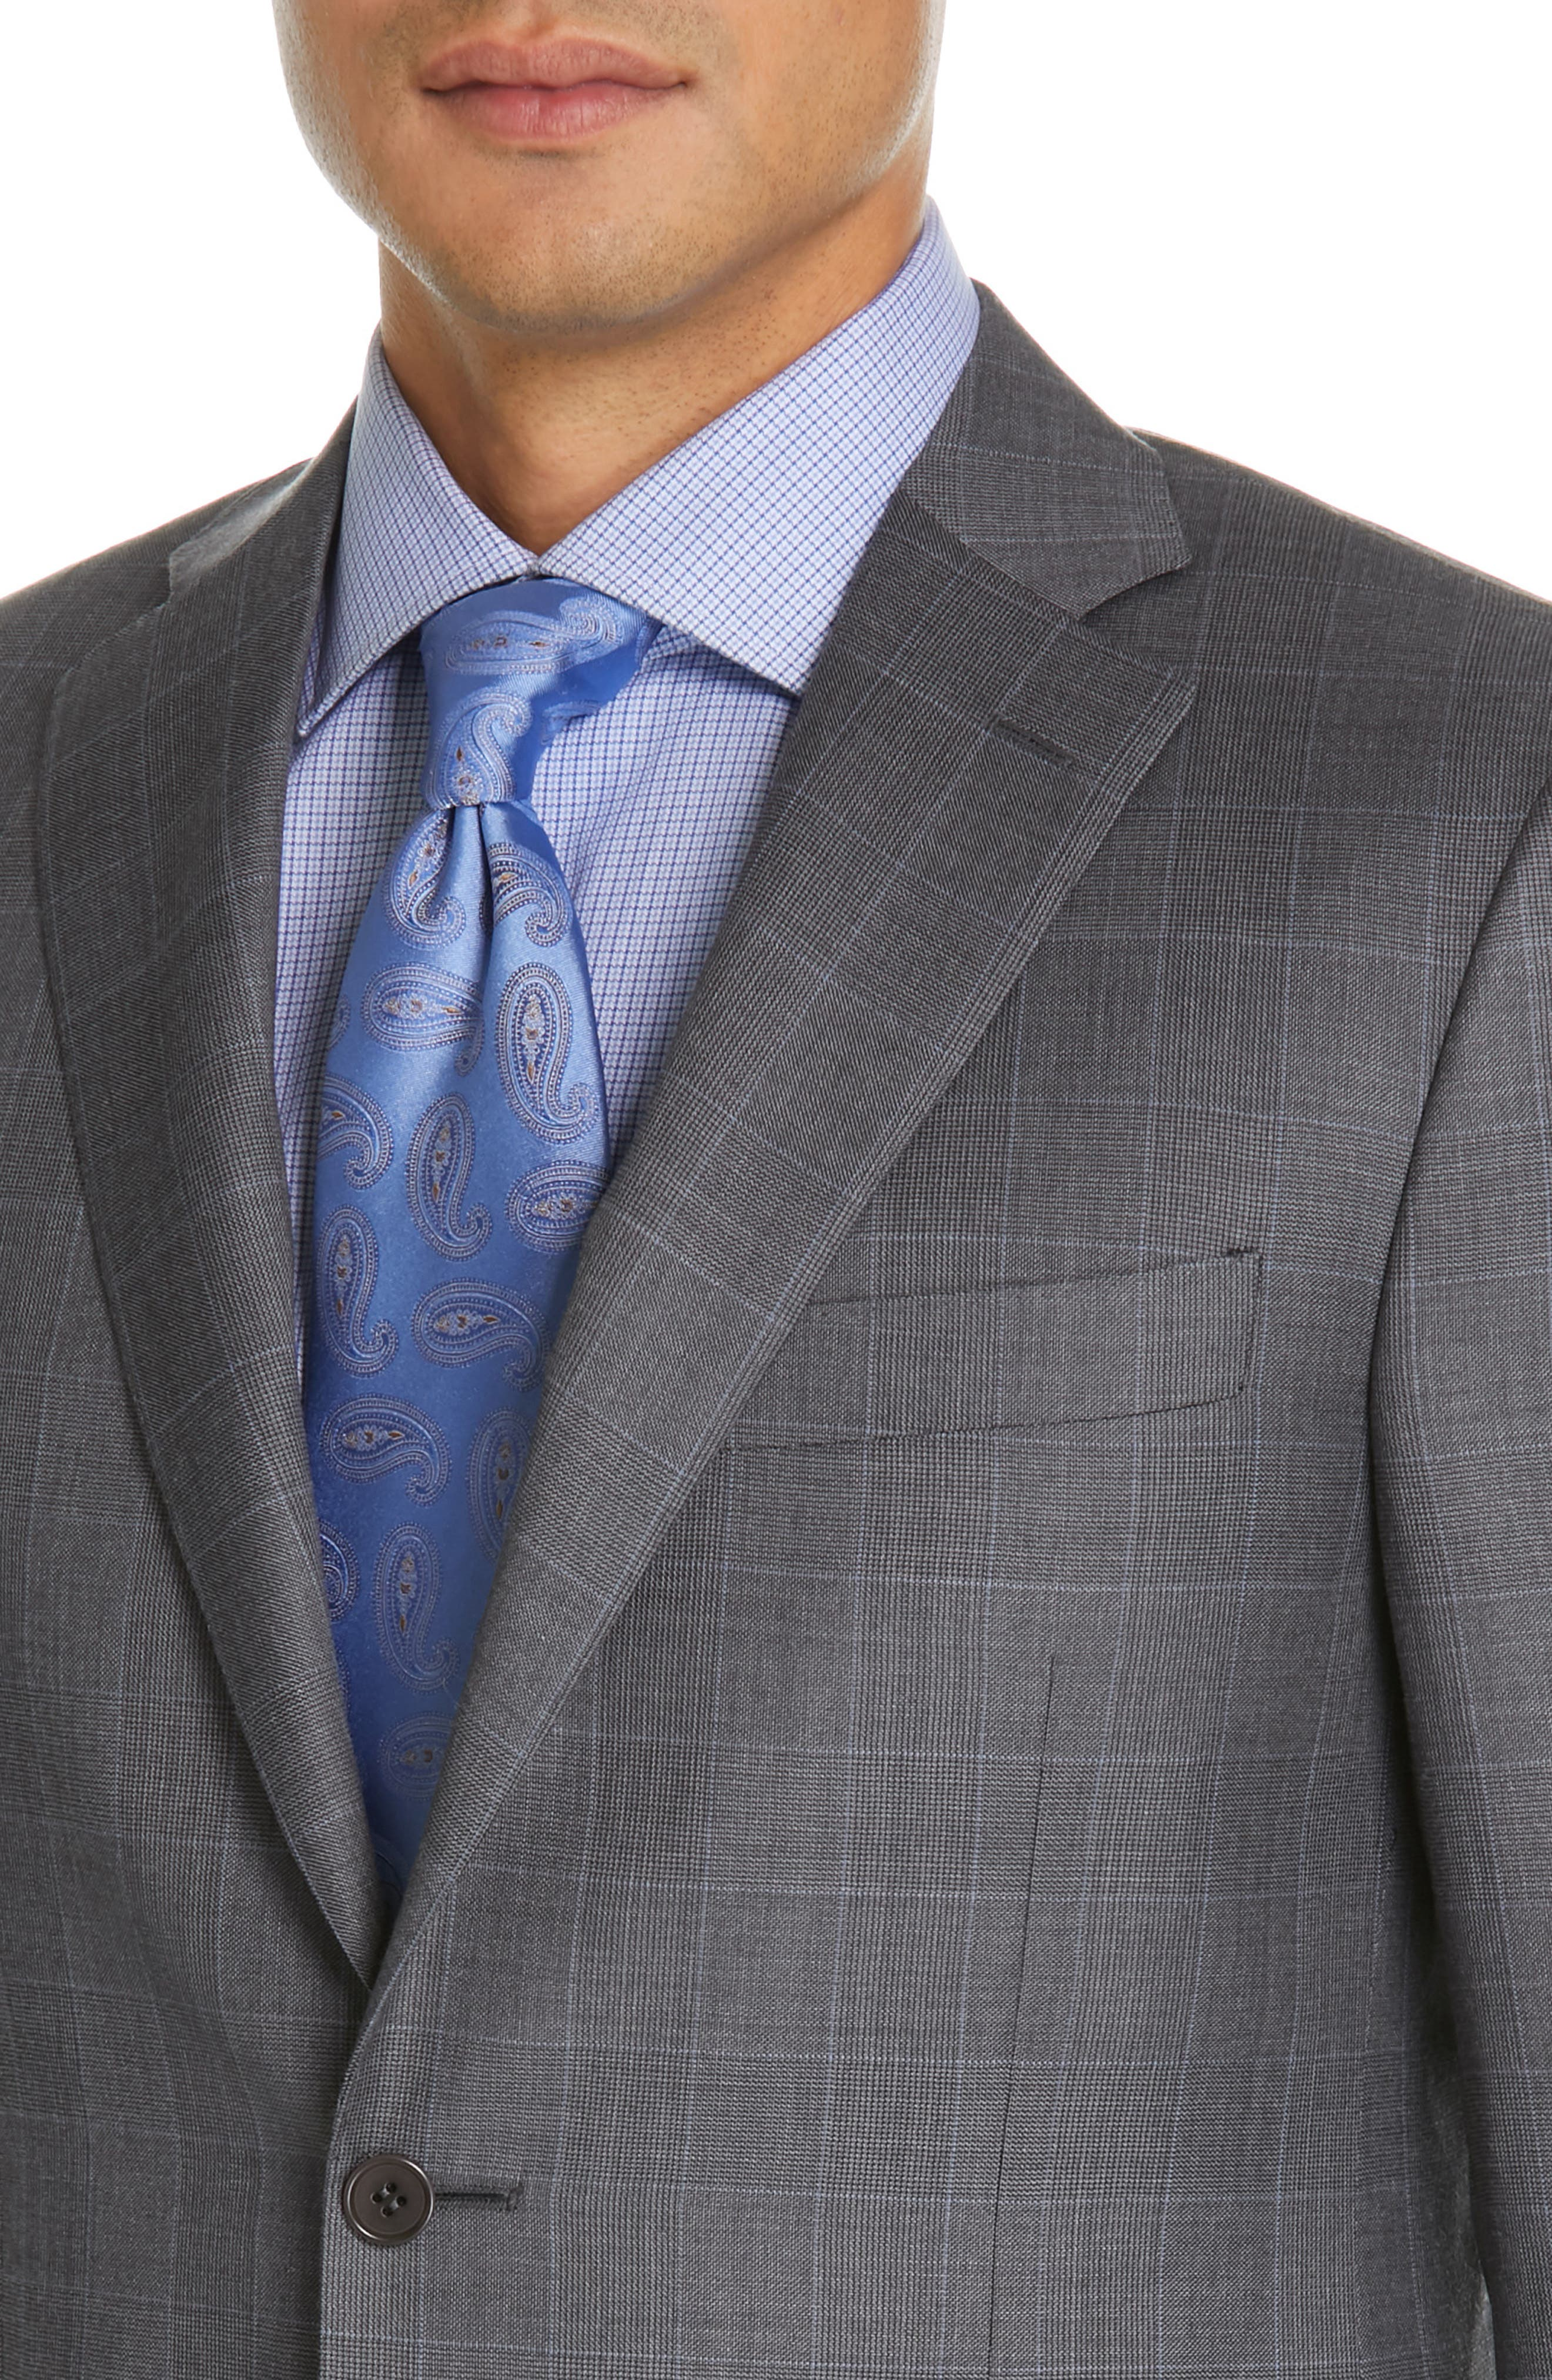 Sienna Classic Fit Plaid Wool Suit,                             Alternate thumbnail 4, color,                             GREY